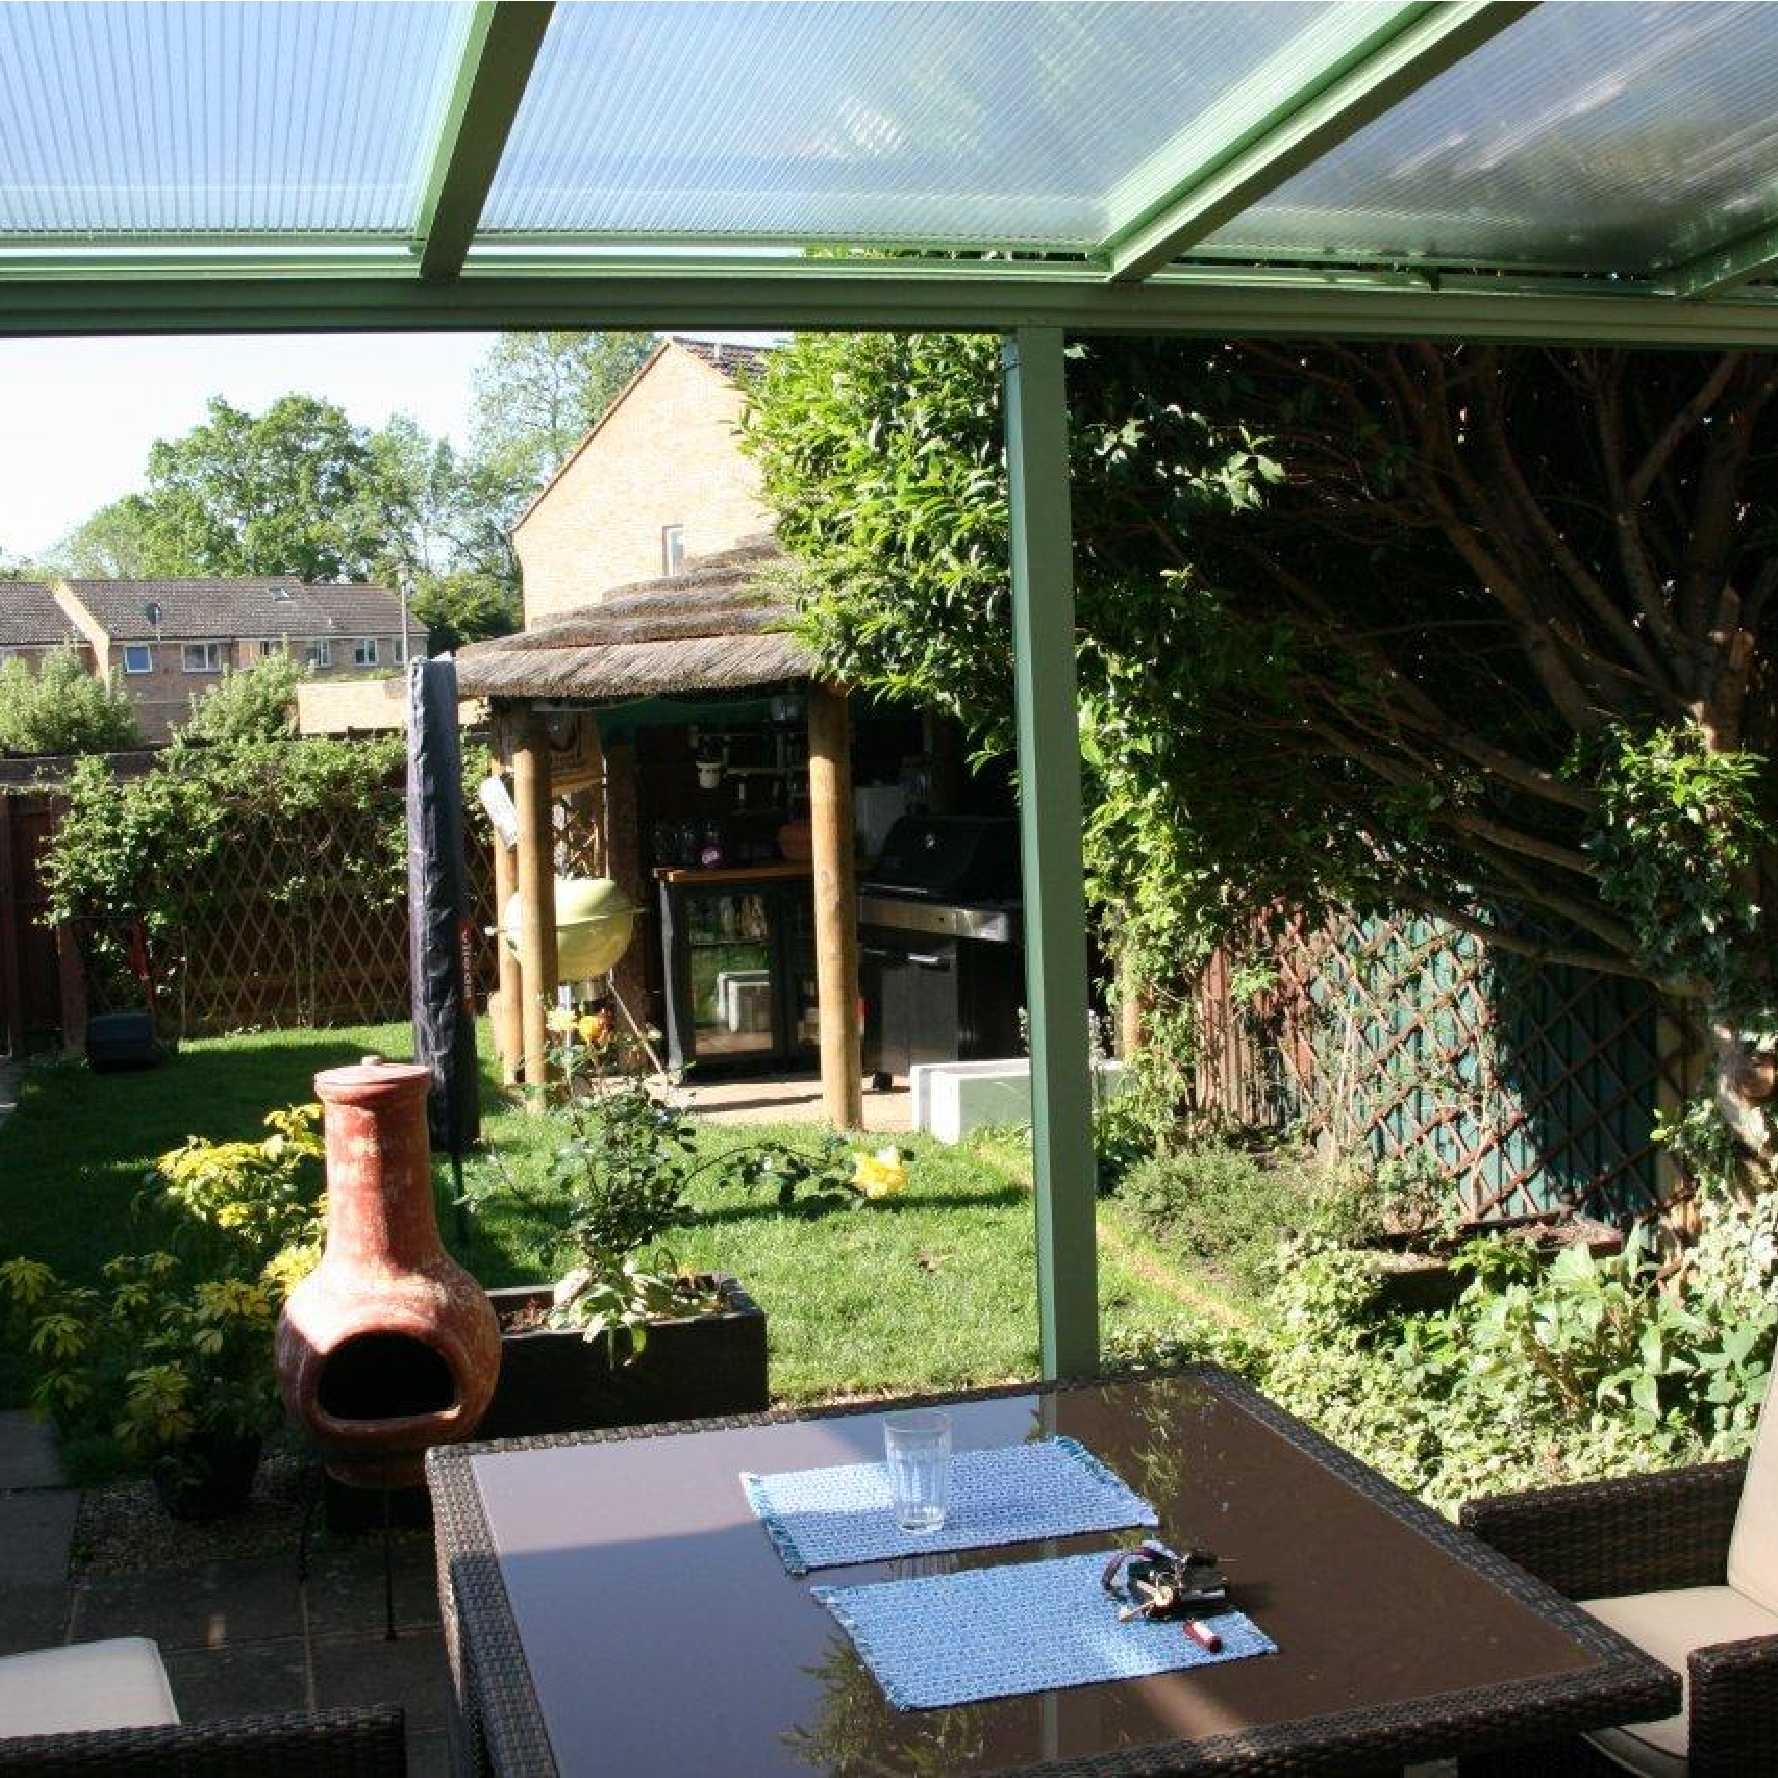 Affordable Omega Smart Lean-To Canopy with 16mm Polycarbonate Glazing - 6.3m (W) x 1.5m (P), (4) Supporting Posts